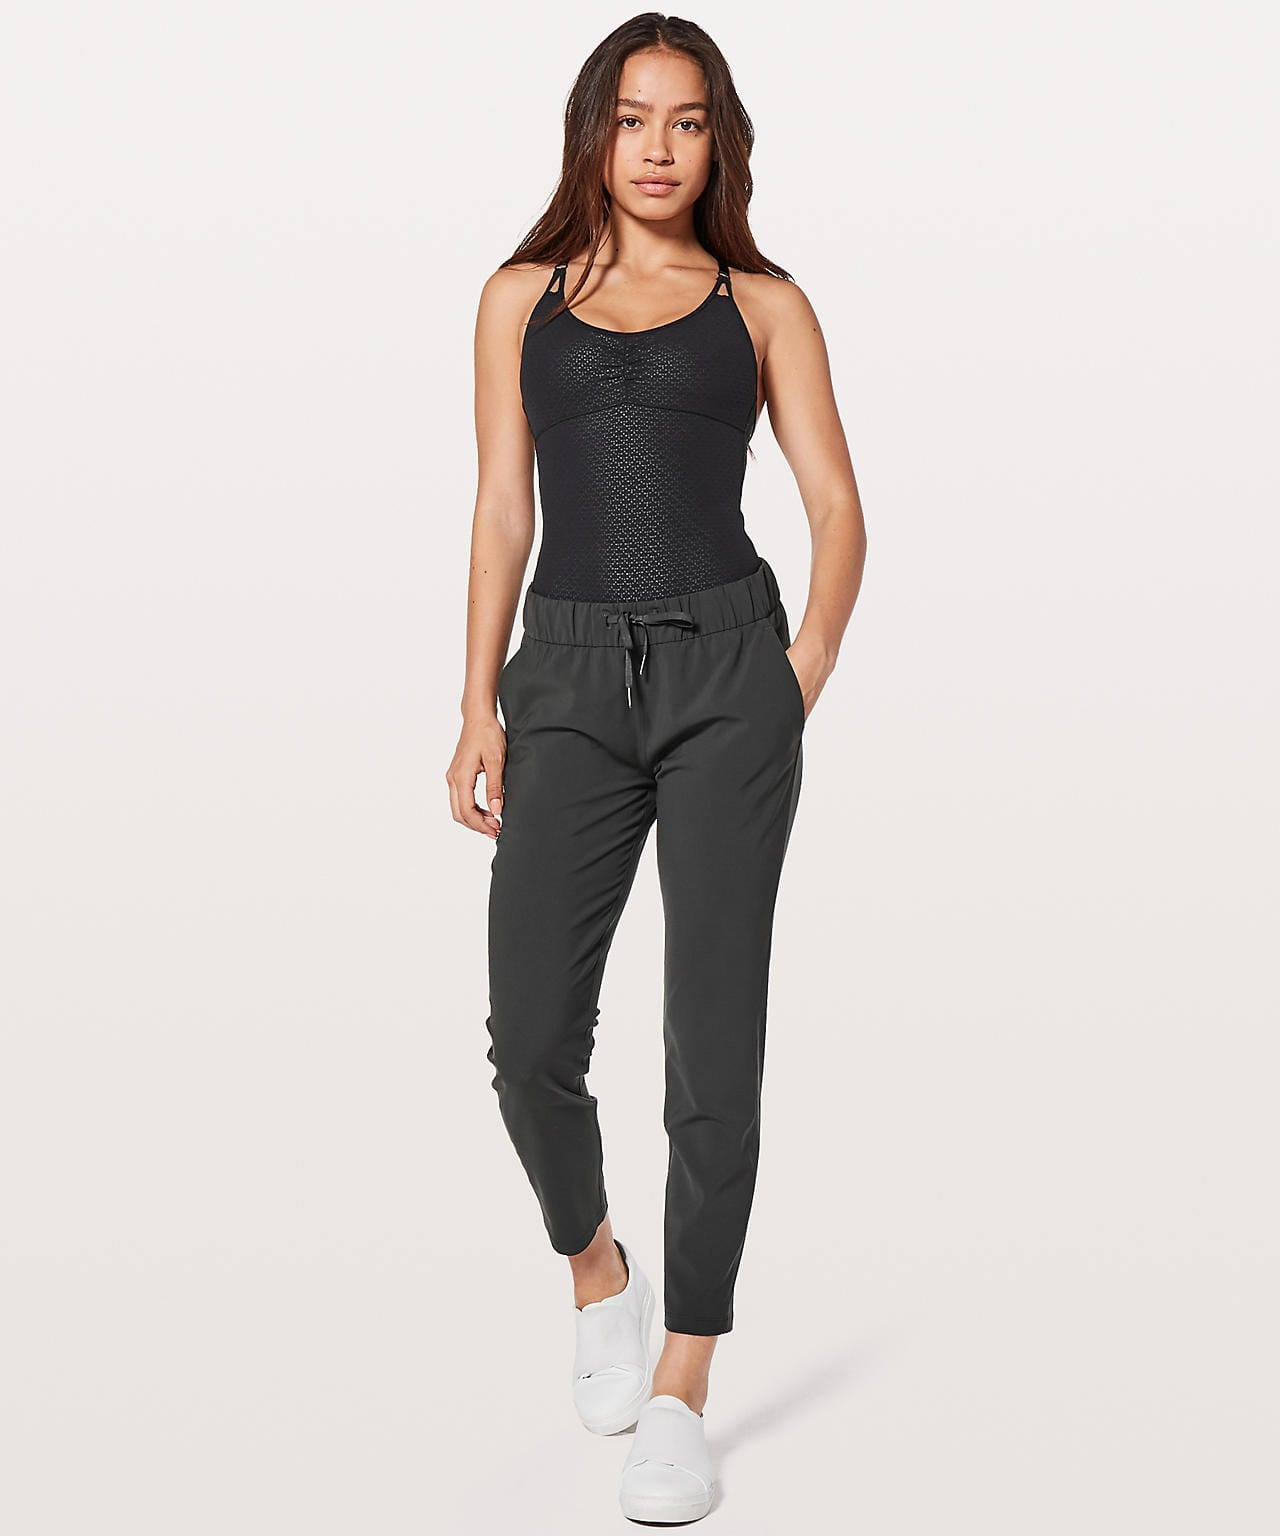 Lululemon The Easy Bodysuit